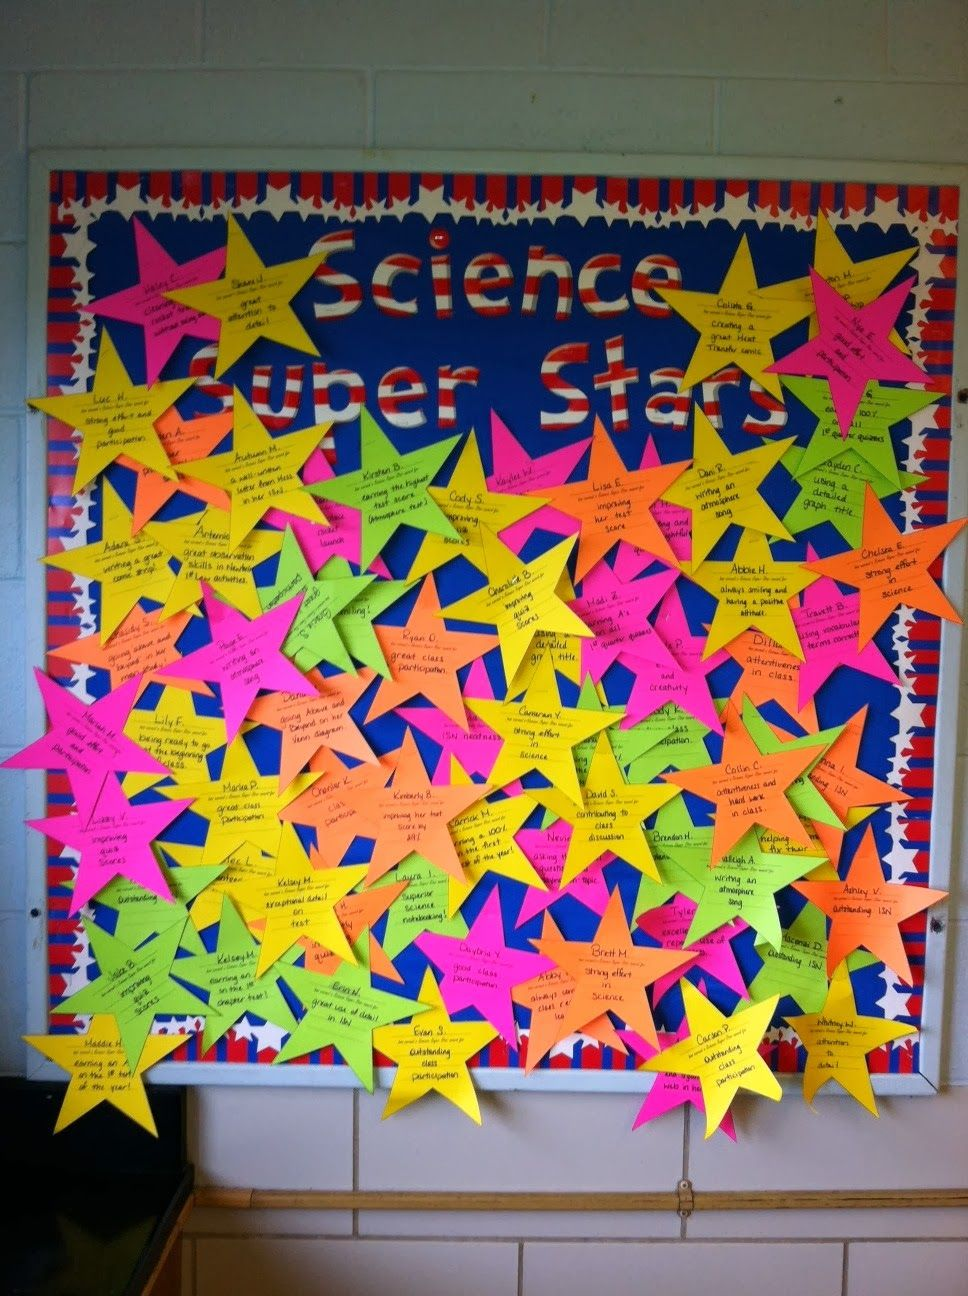 Classroom Reward Ideas For Middle School ~ Beyond the goggles science super stars a classroom